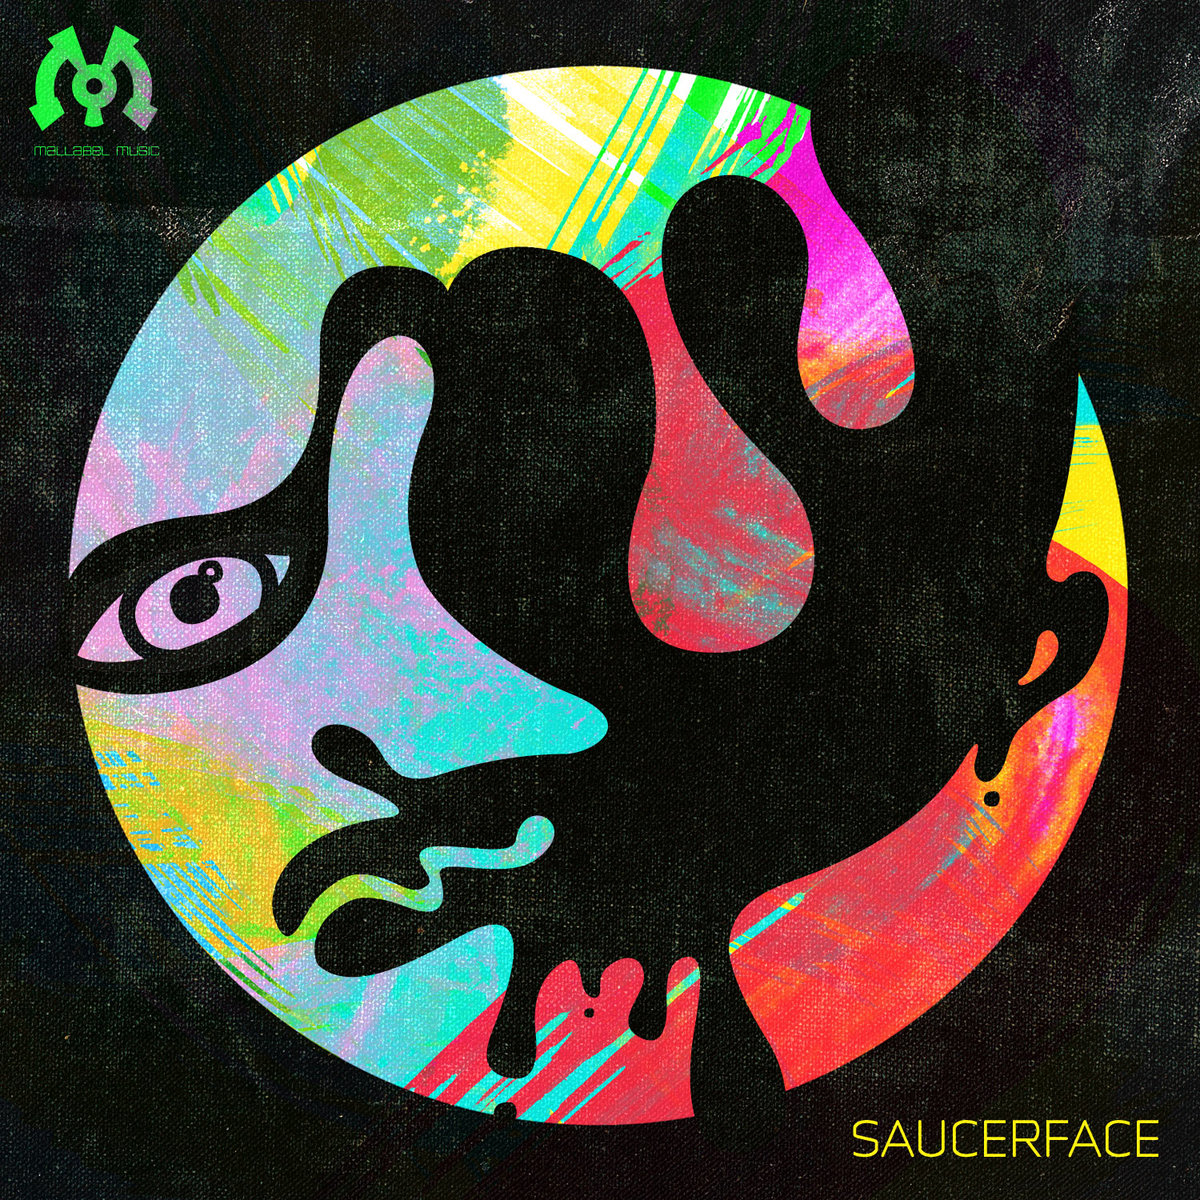 El Diablo - El Diablo Slash @ 'Various Artists - Saucerface' album (electronic, dubstep)